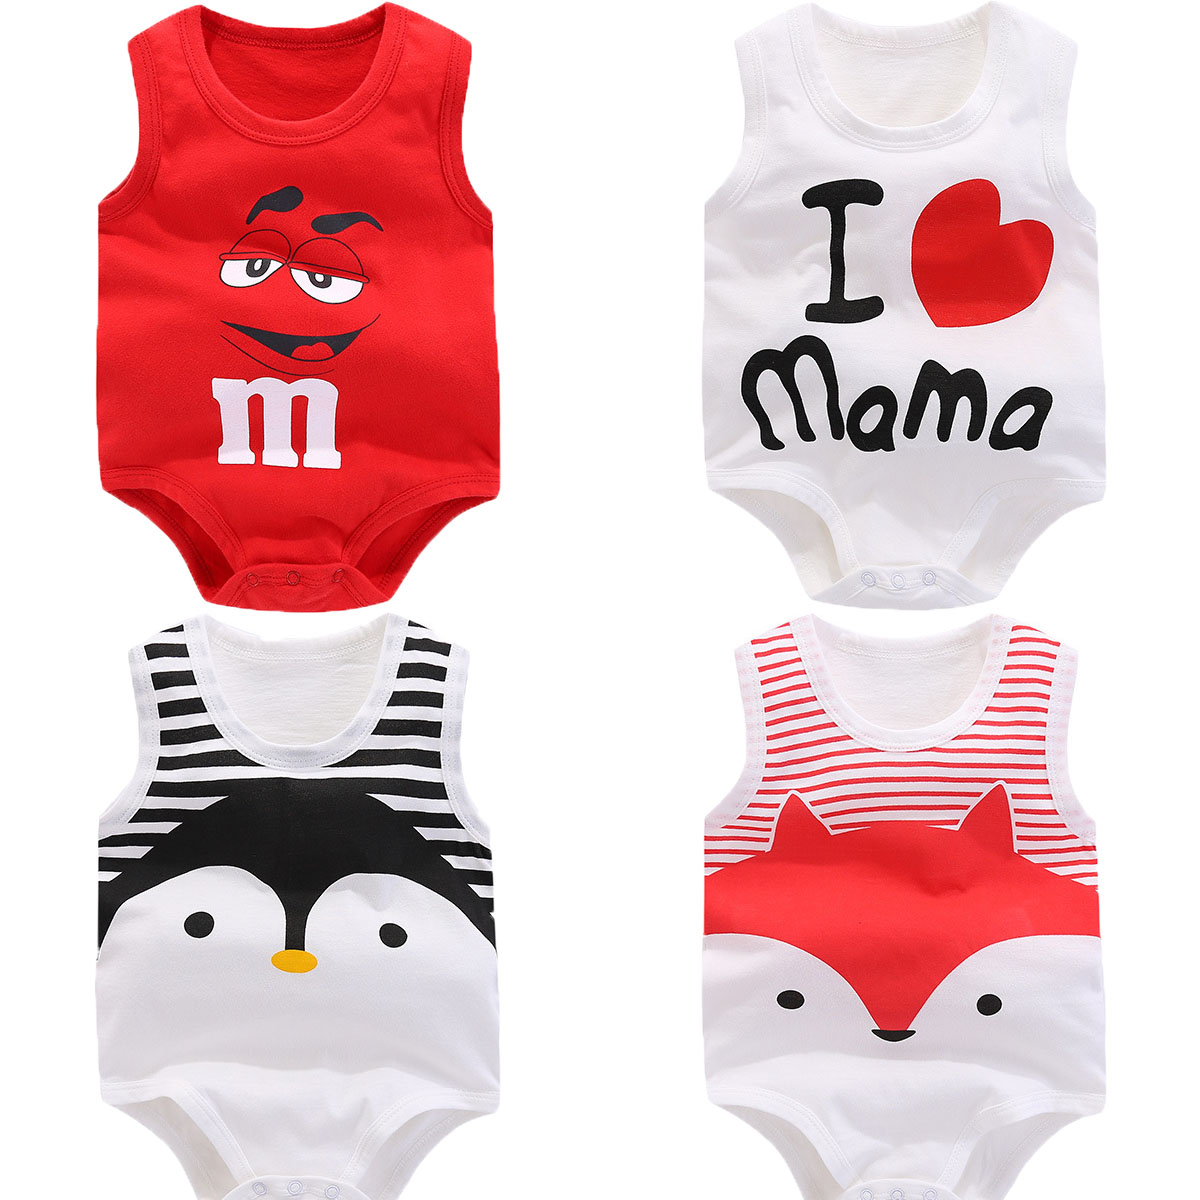 Unisex Newborn Baby Boy Girl Romper Bodysuit Summer Funny Clothes Outfits 0-24M